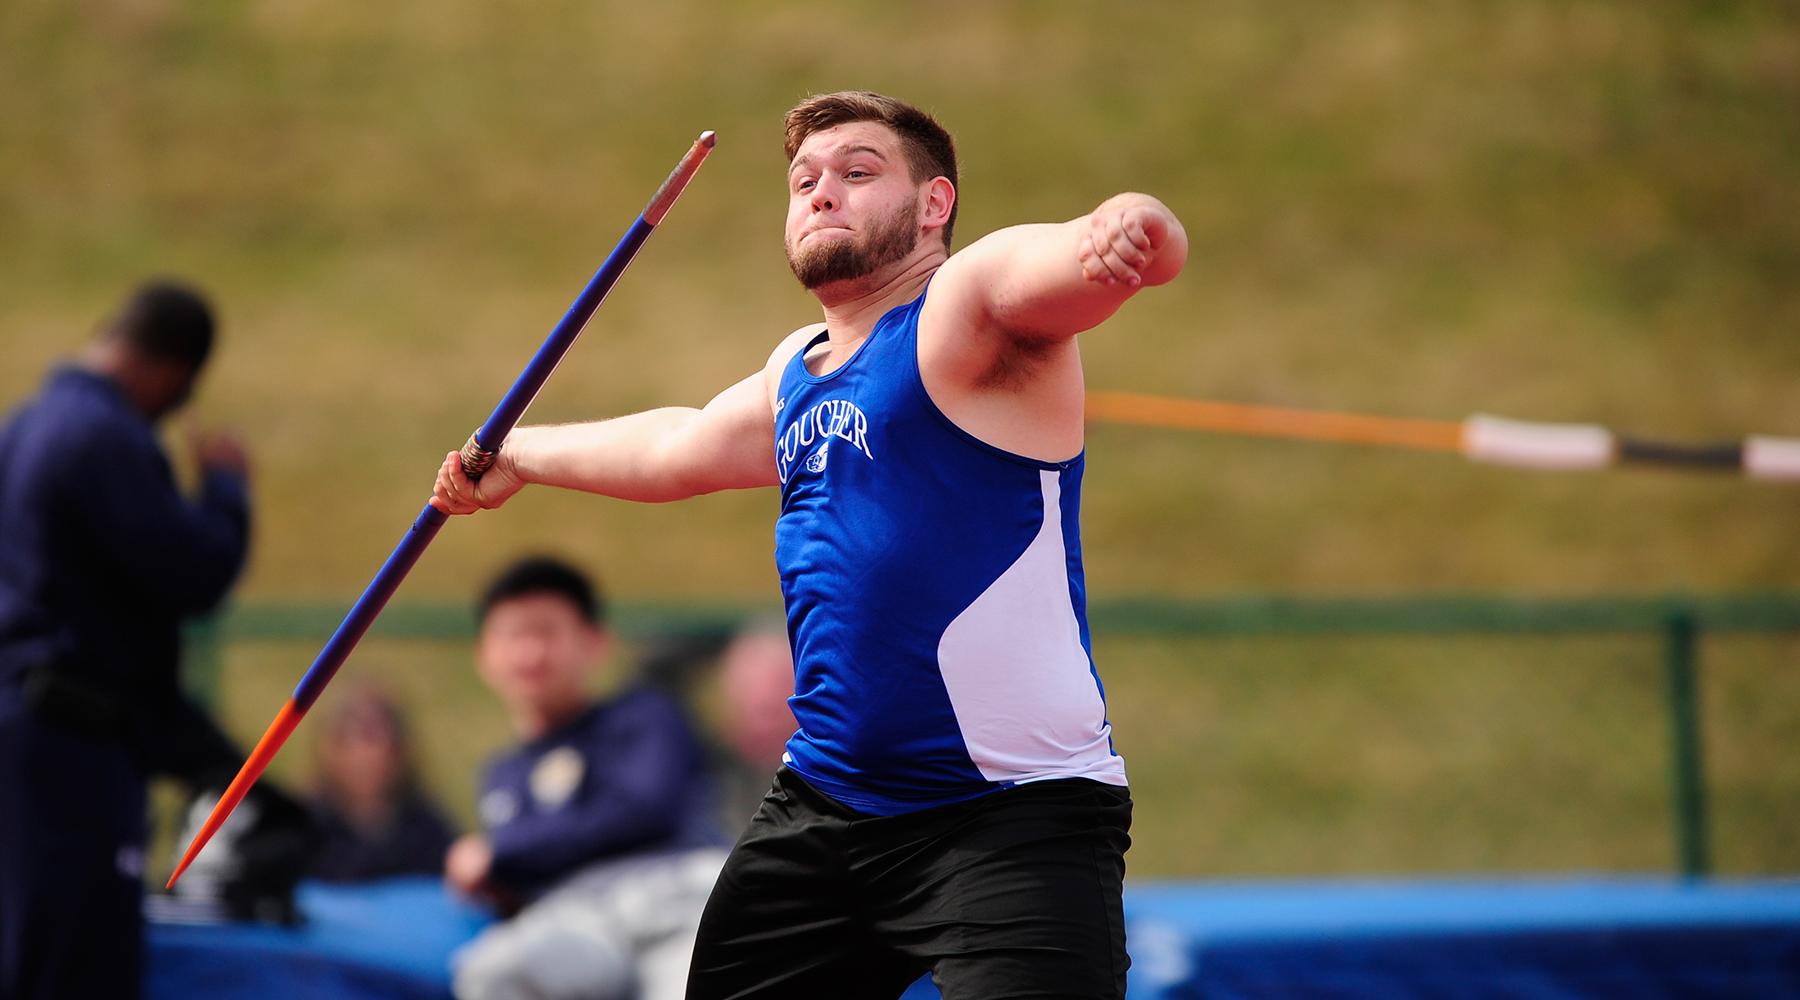 Darby Bauer Named Landmark Conference's Men's Field Athlete of the Week